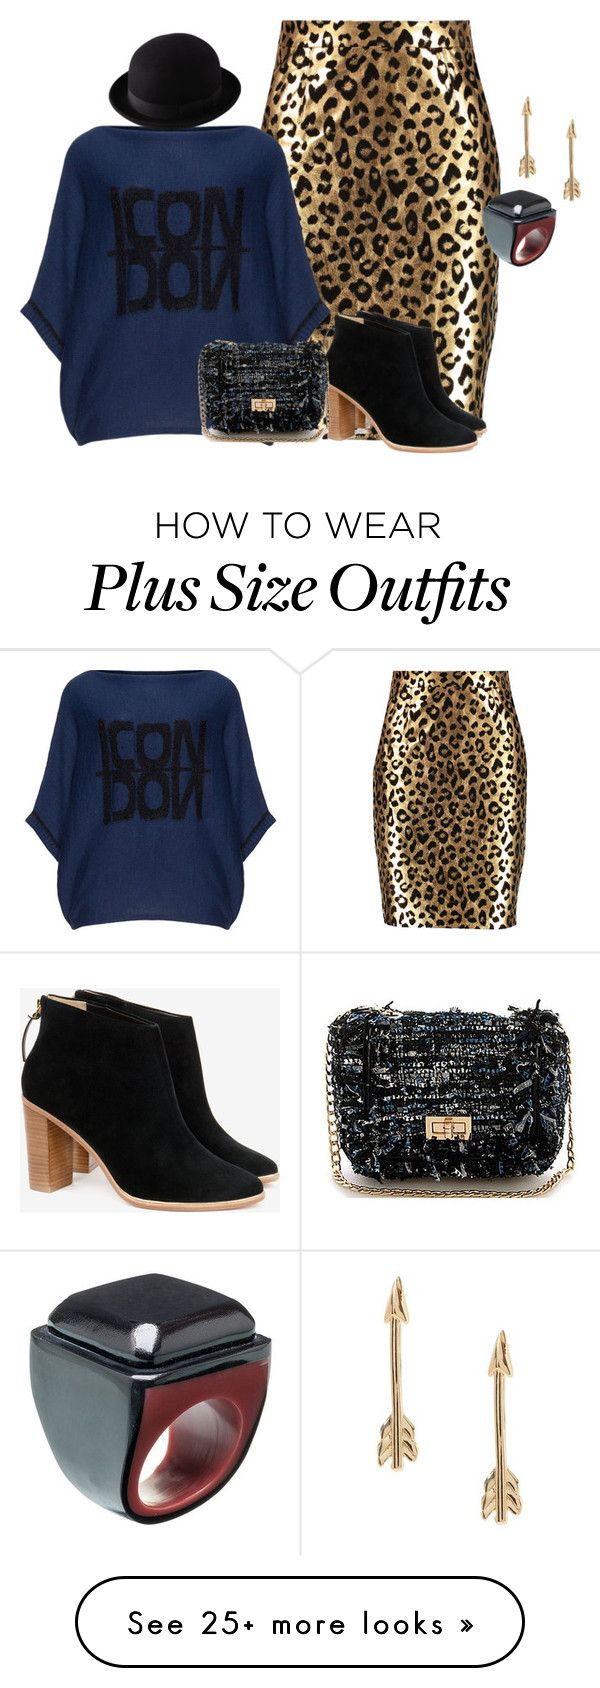 """""""plus size day or night chic"""" by kristie-payne on Polyvore featuring Milly, Ted Baker, Mat, Uniqlo, Bungalow 20, Banana Republic and Marni"""